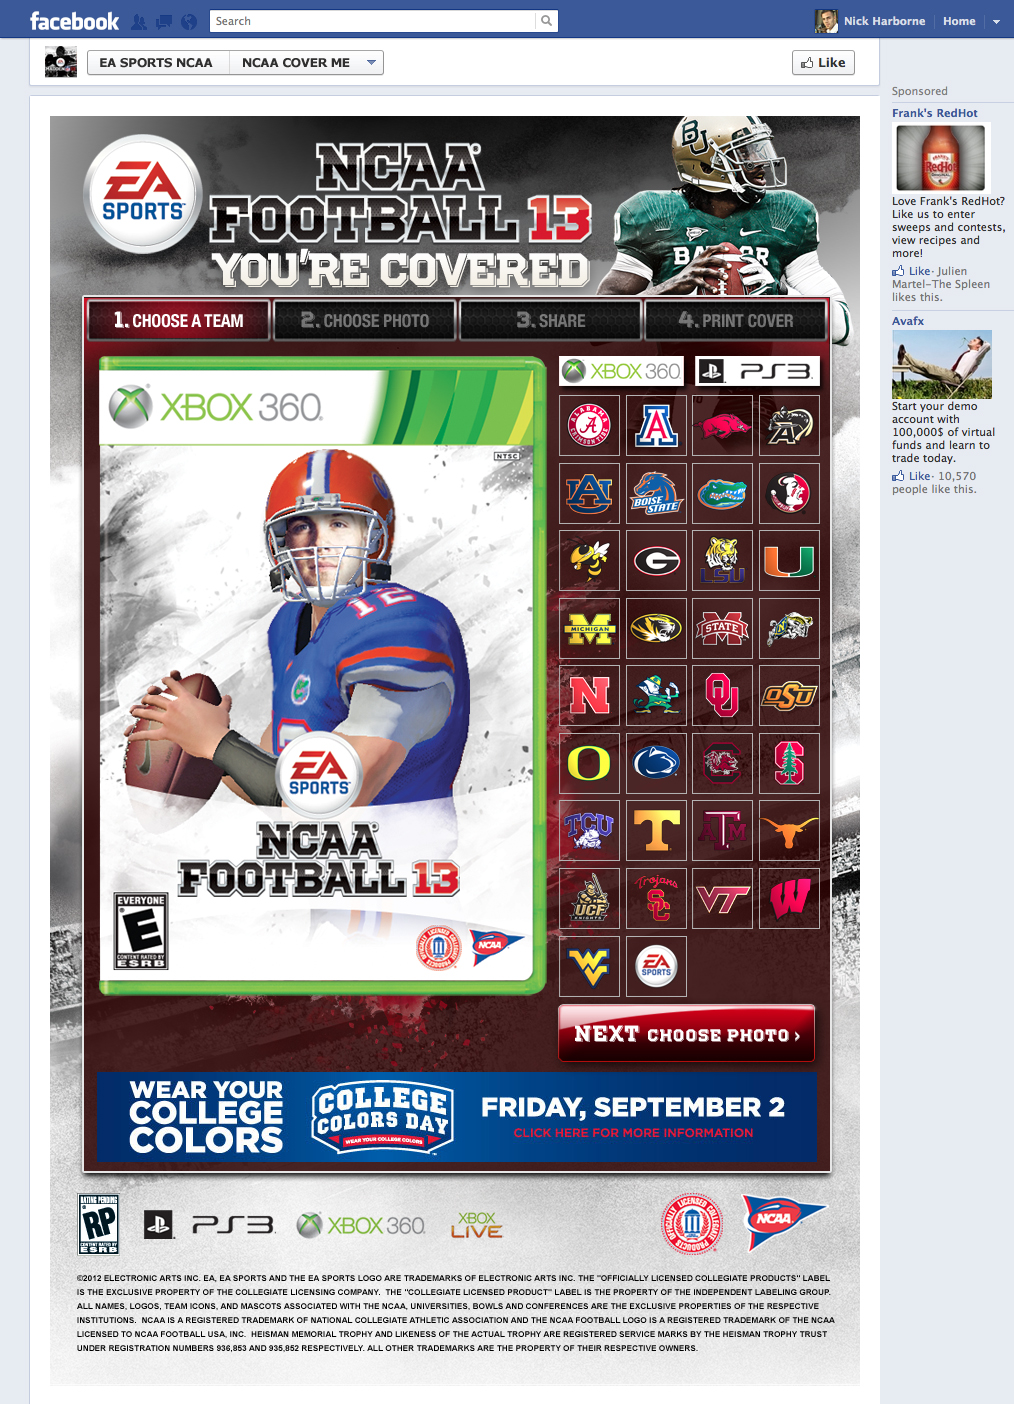 Introducing NCAA Football 13 & You're Covered Free